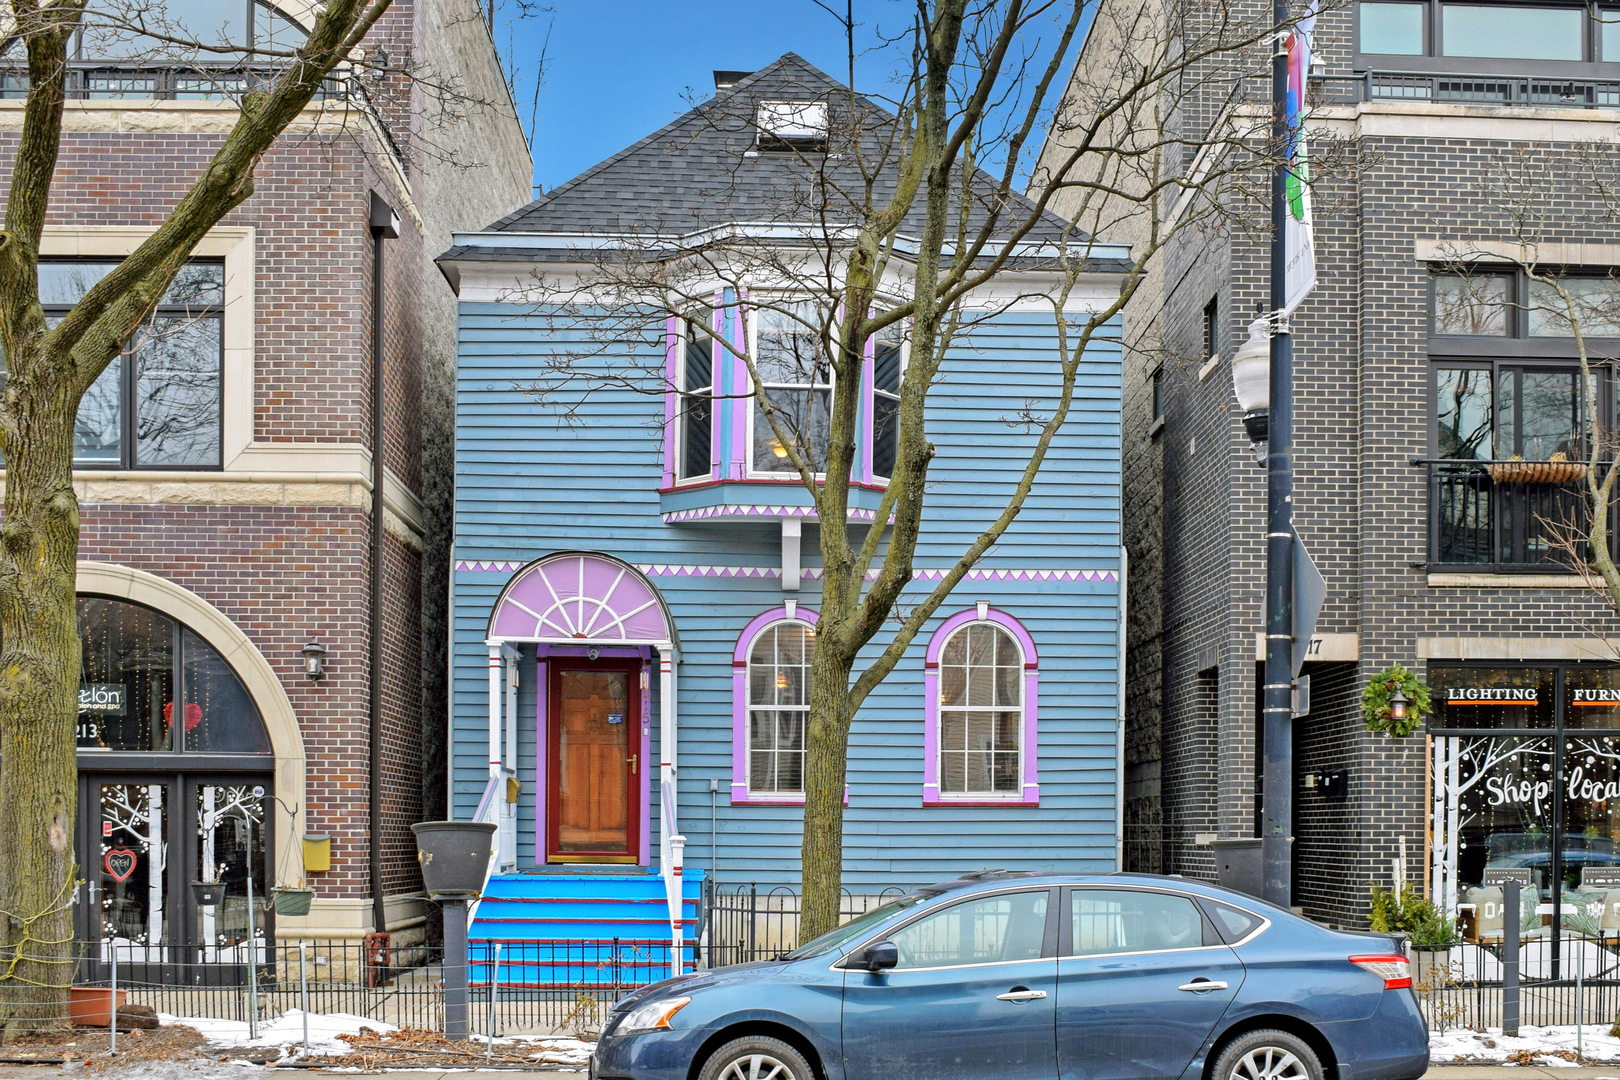 Attention all developers and rehabbers. Great location, in the heart of Roscoe Village, zoned for RT